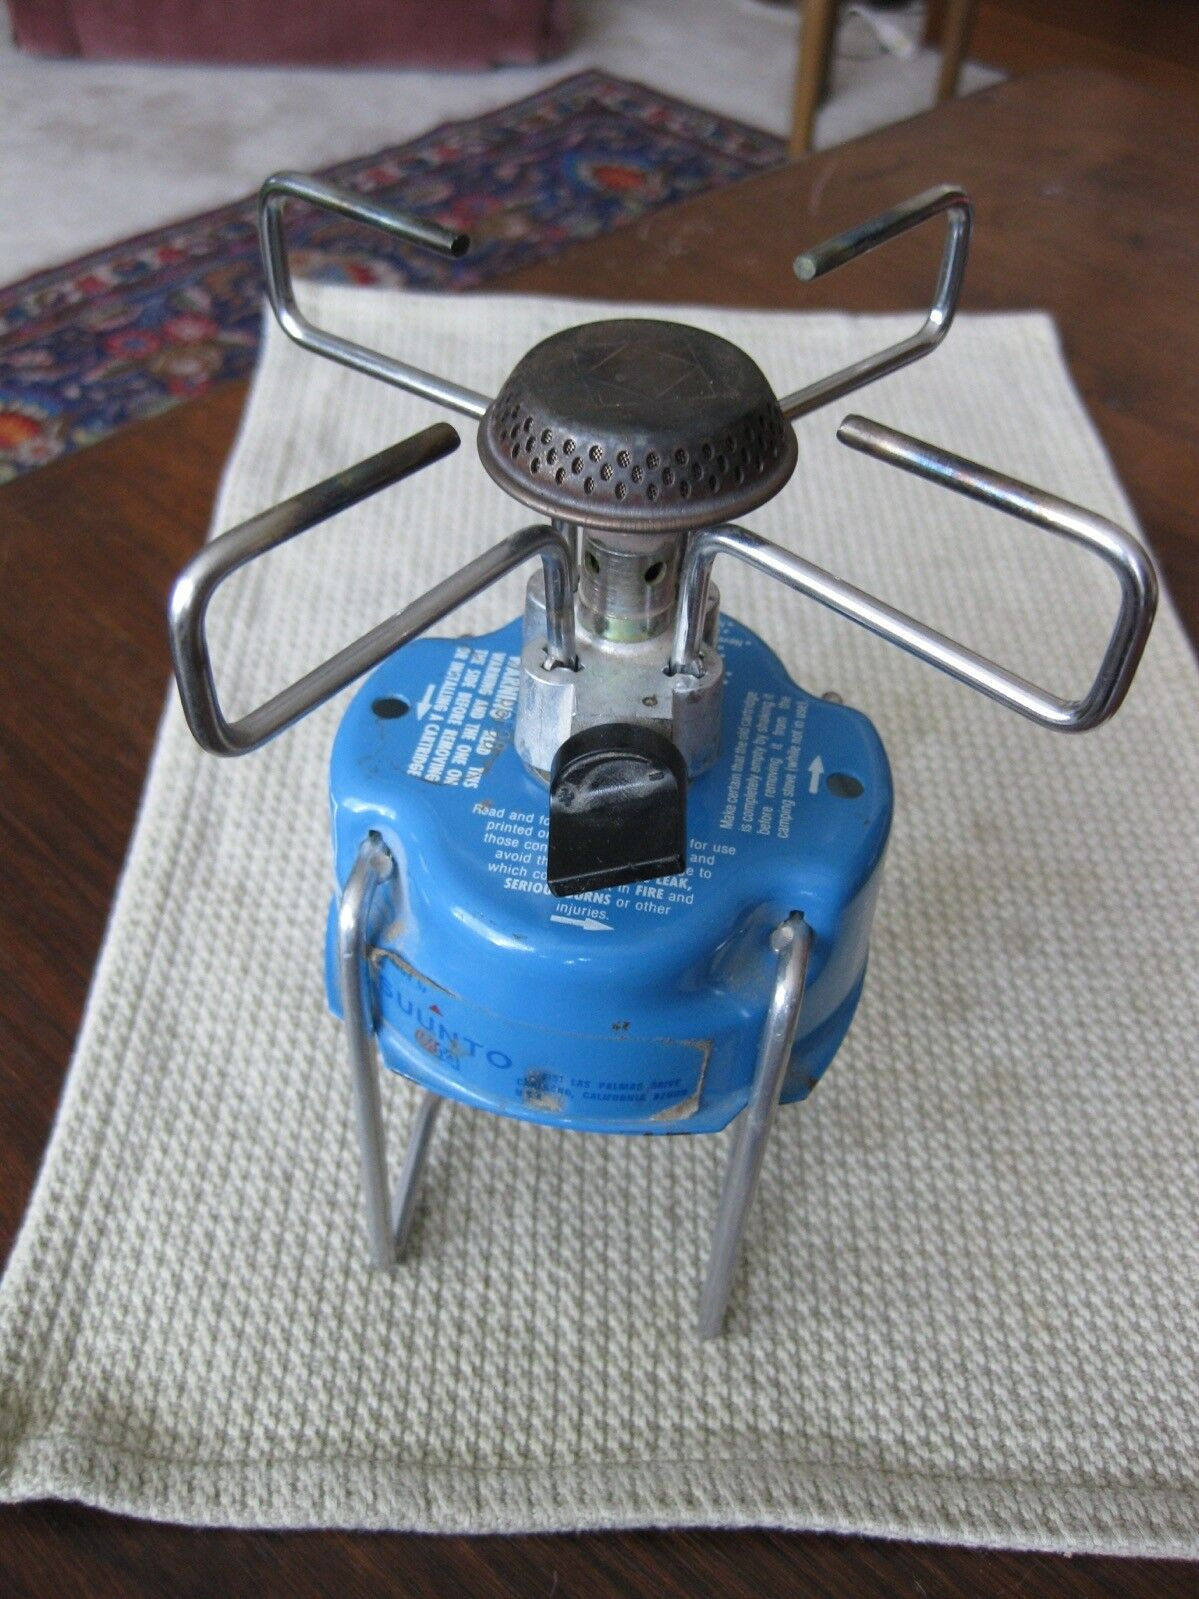 Vintage Suunto  Propane Hiking Stove Propane Lightweight Made in the USA Camping  lowest whole network